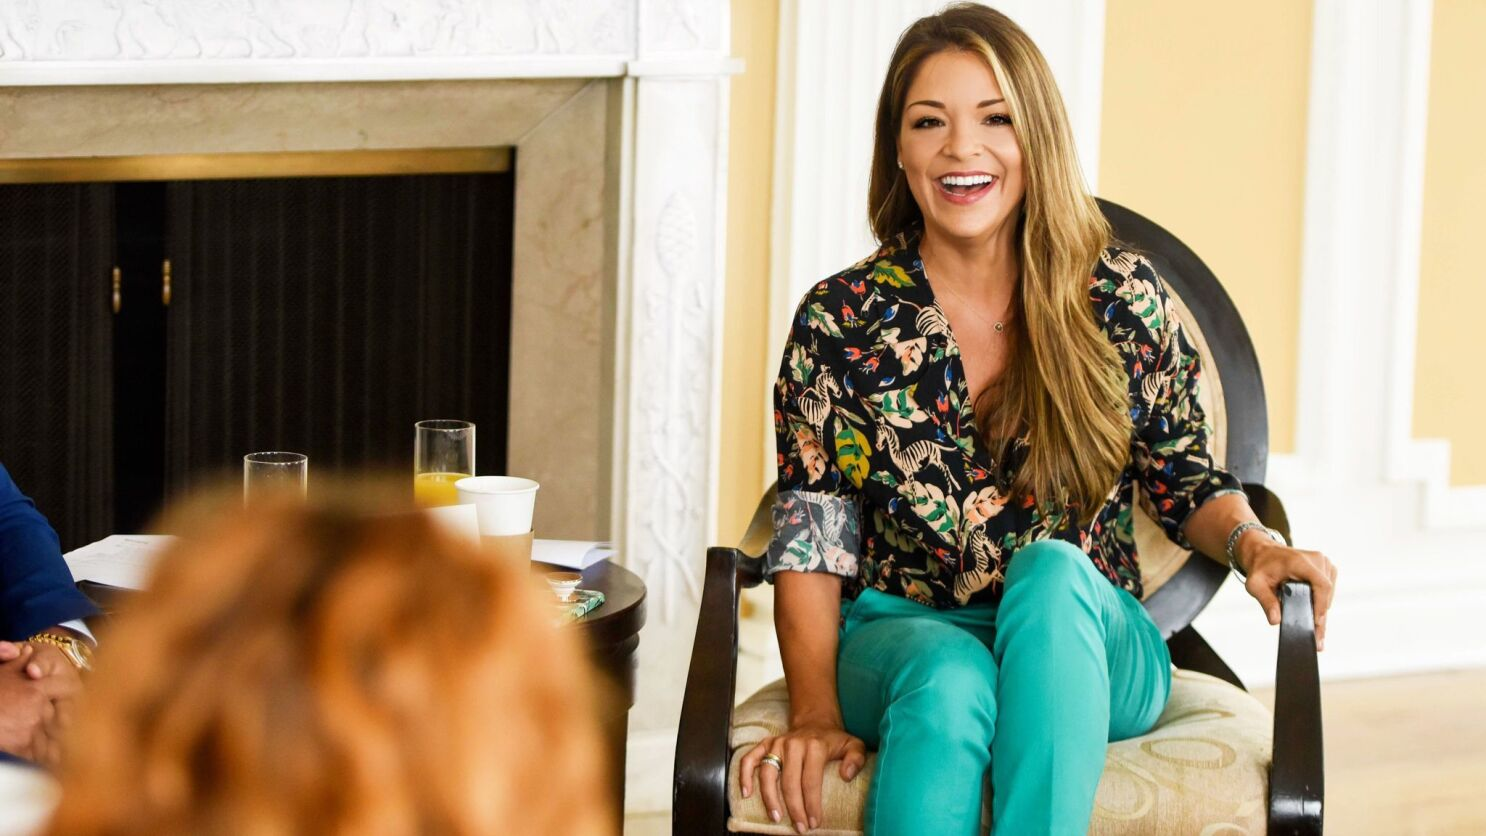 Affordable Design Magician Sabrina Soto Has Even More Reveals Up Her Sleeve Los Angeles Times